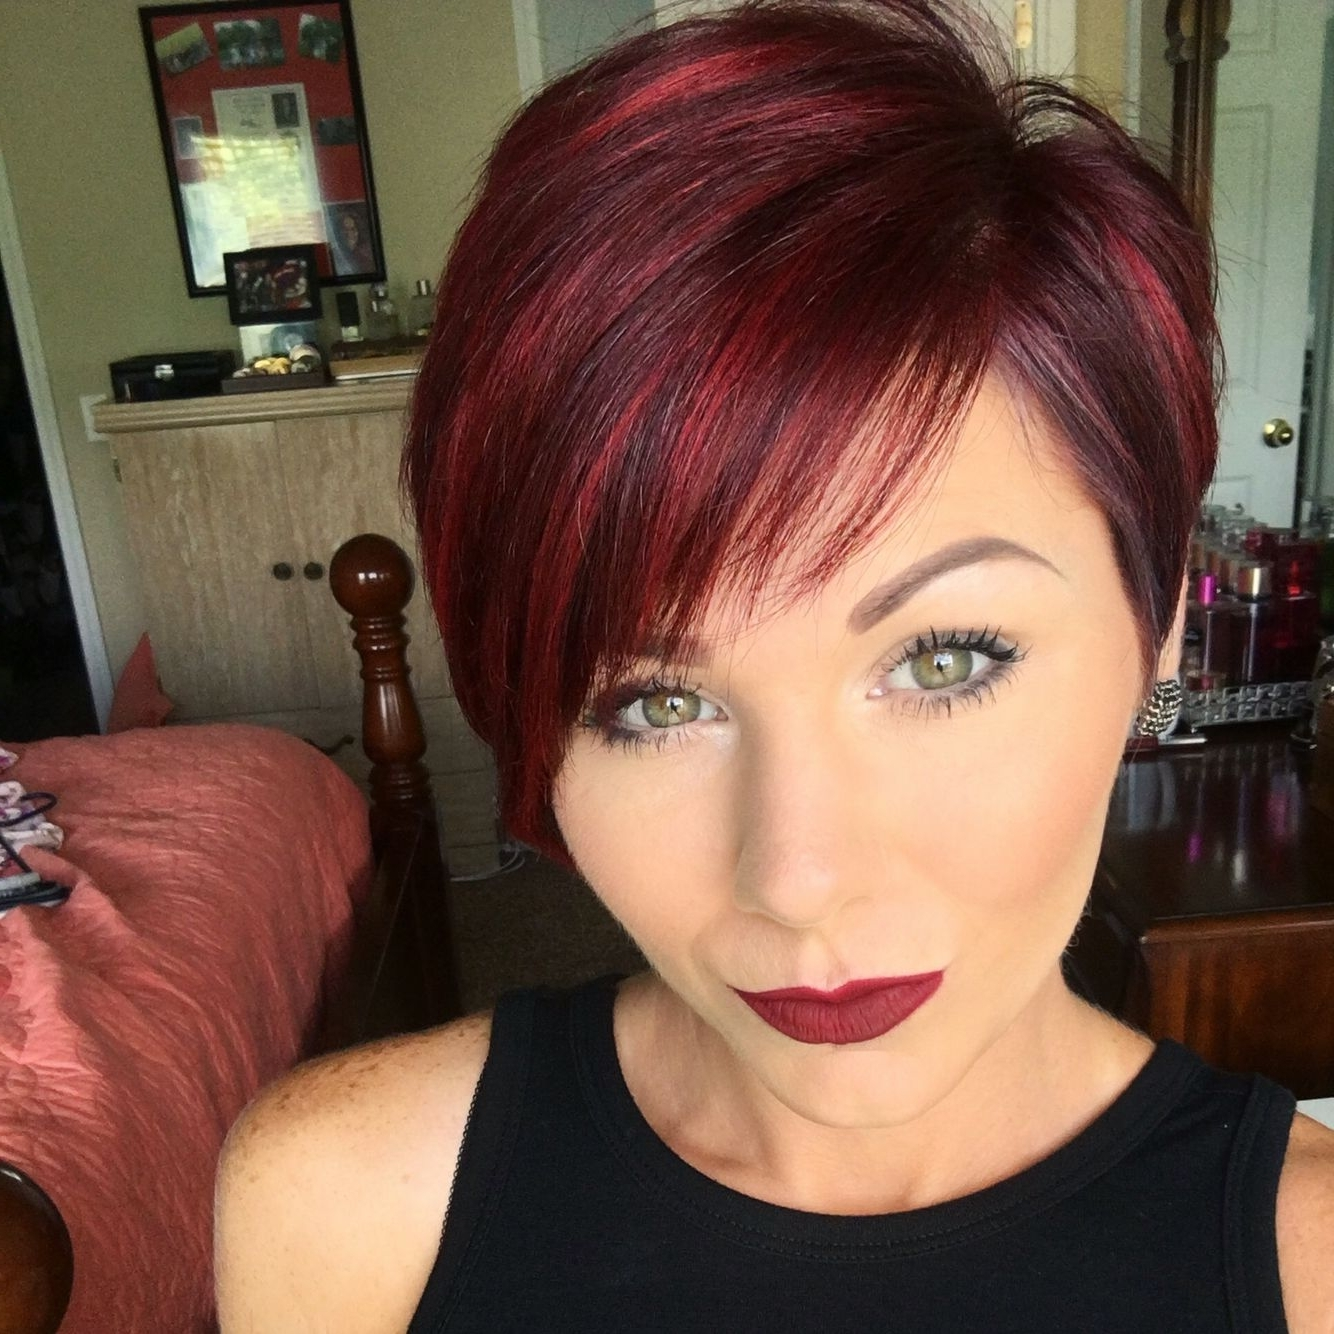 27 Stunning Short Hairstyles for Women